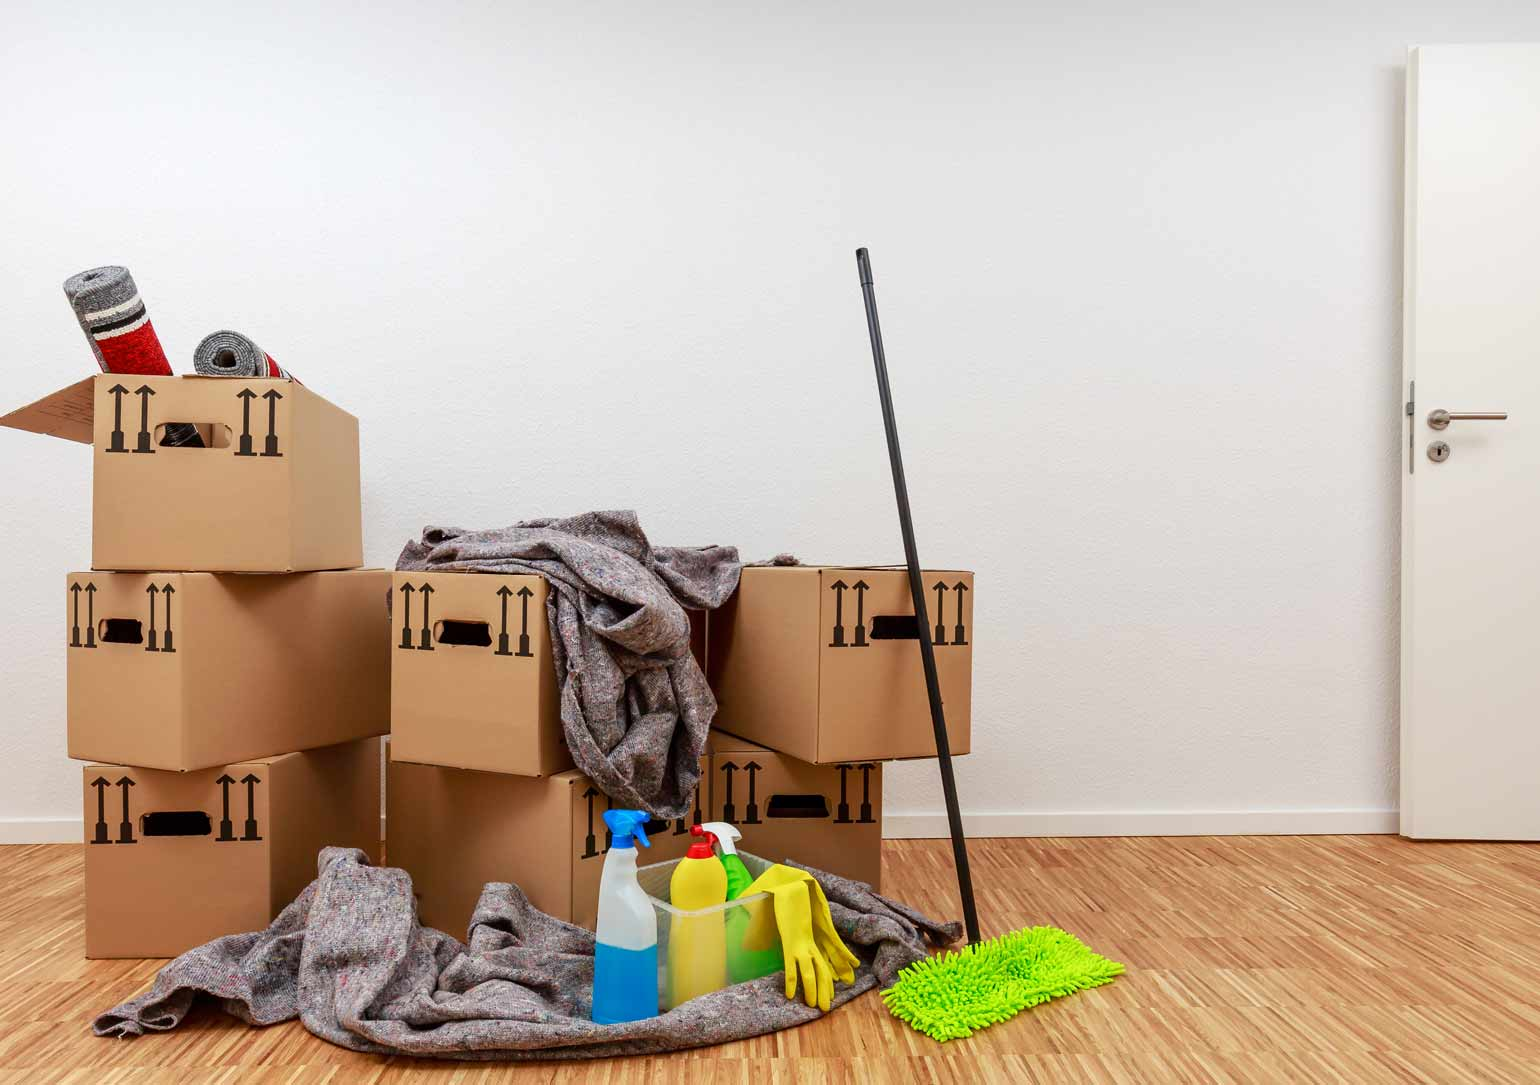 End of tenancy house clearance service in northampton